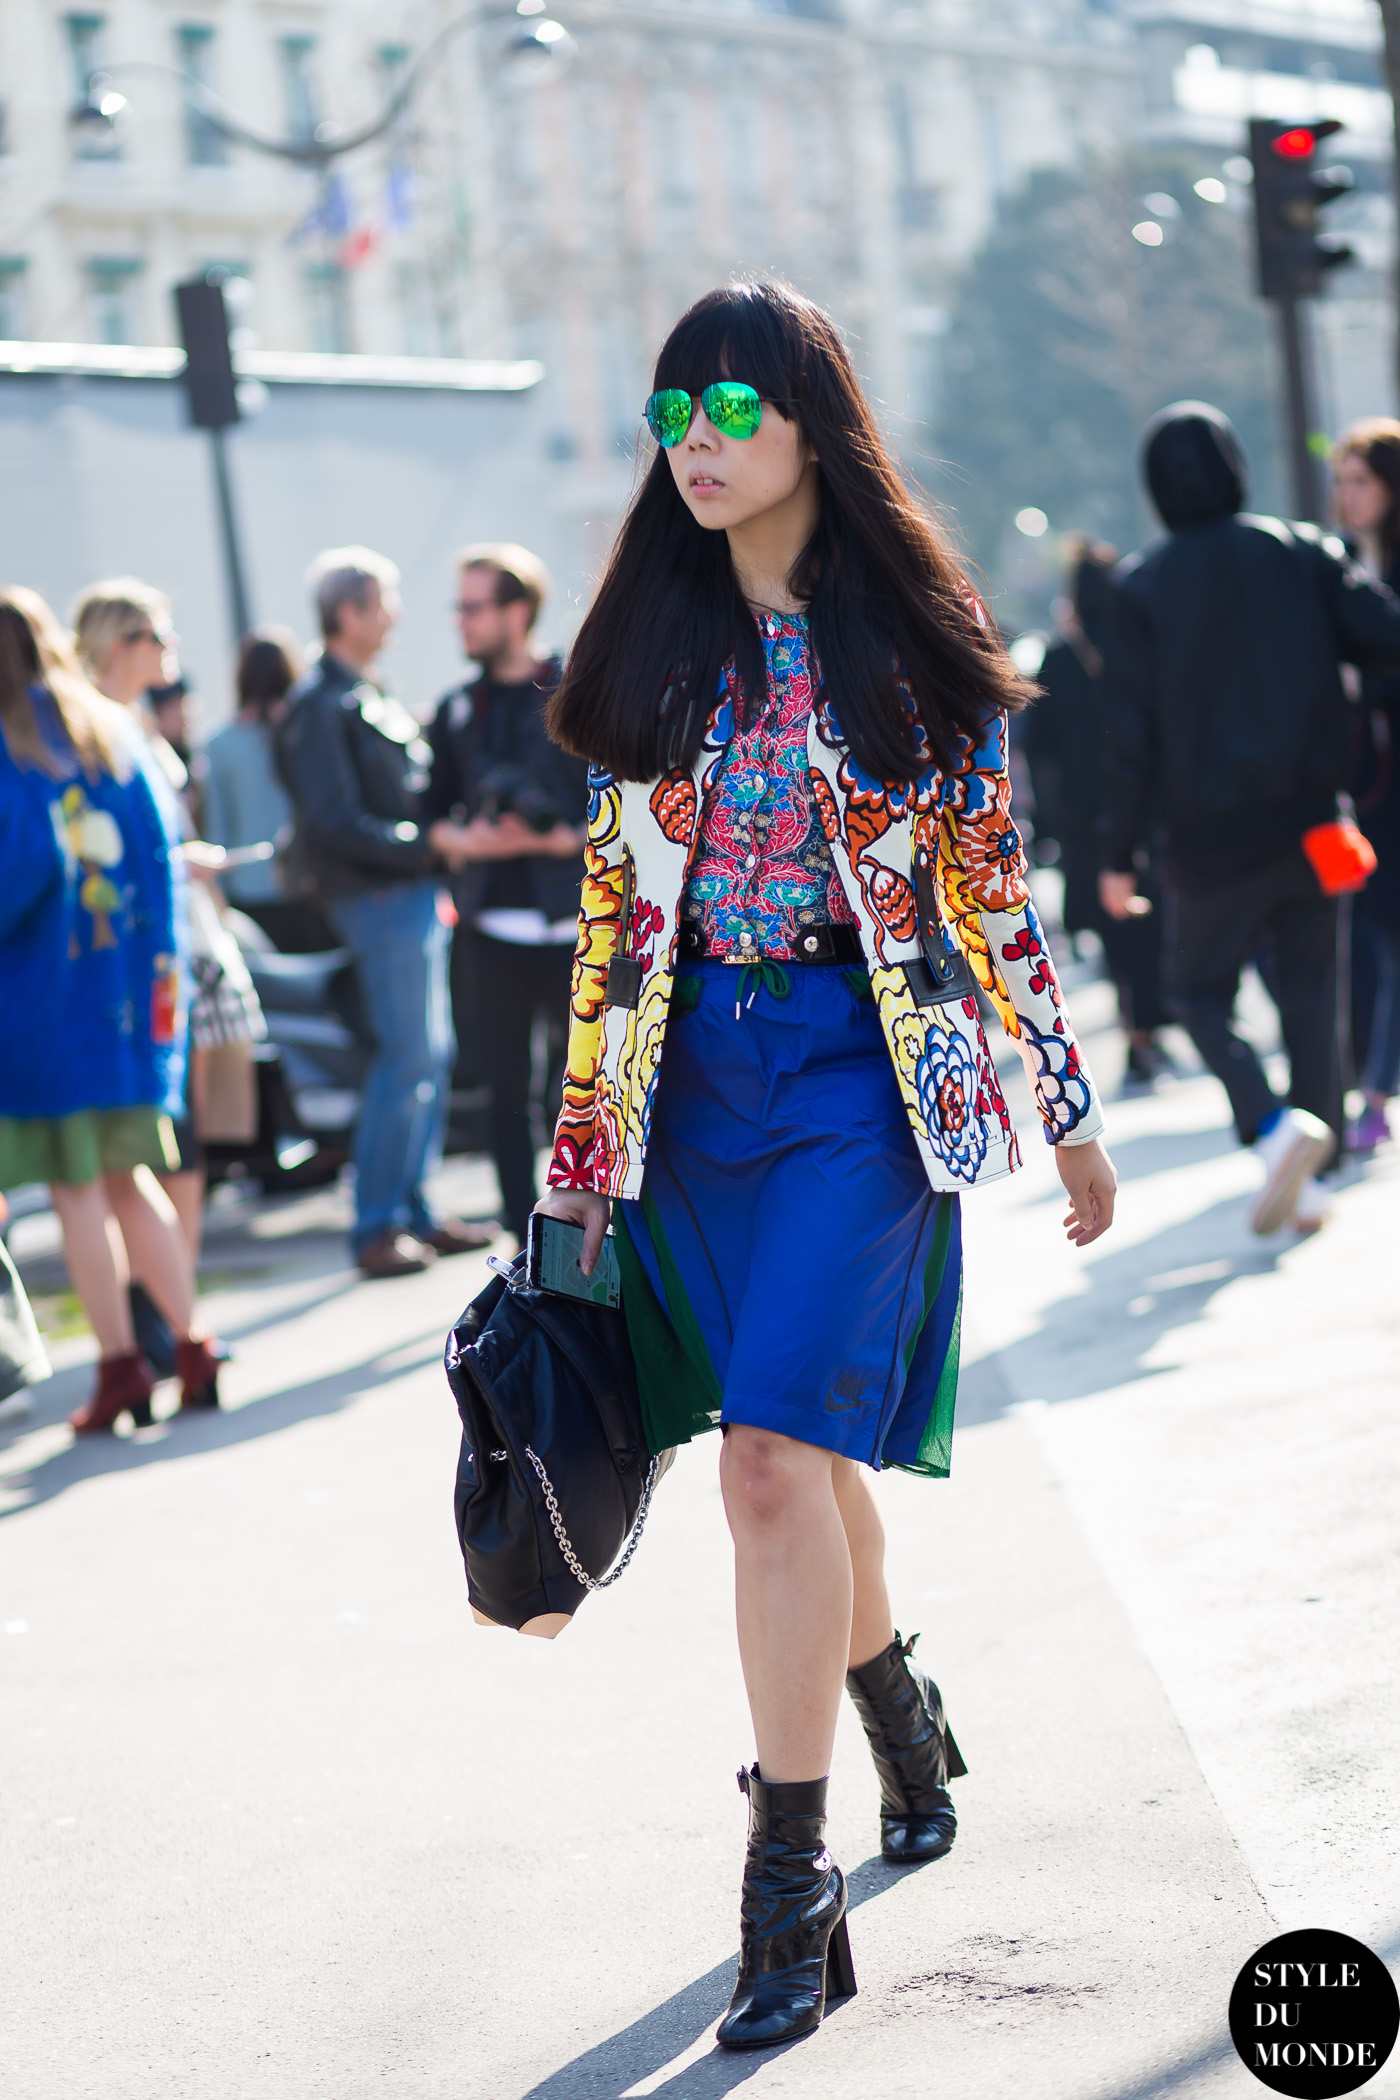 Susie Lau Style Bubble Susie Bubble Street Style Street Fashion Streetsnaps by STYLEDUMONDE Street Style Fashion Photography